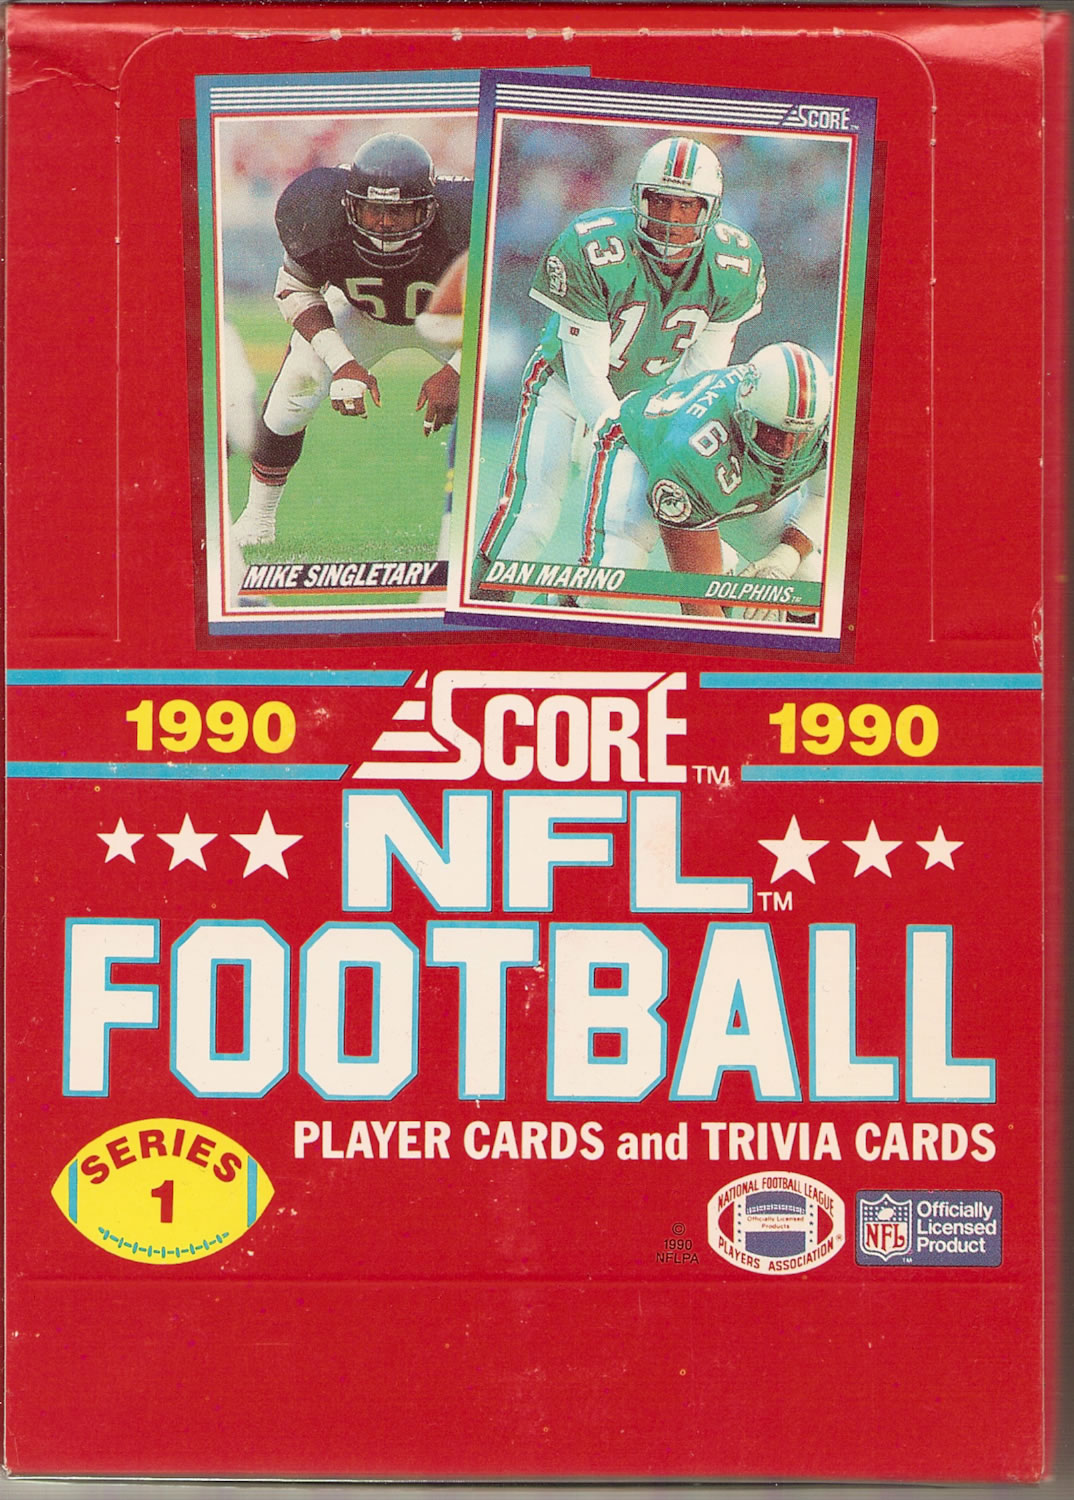 1990 SCORE NFL FOOTBALL BOX